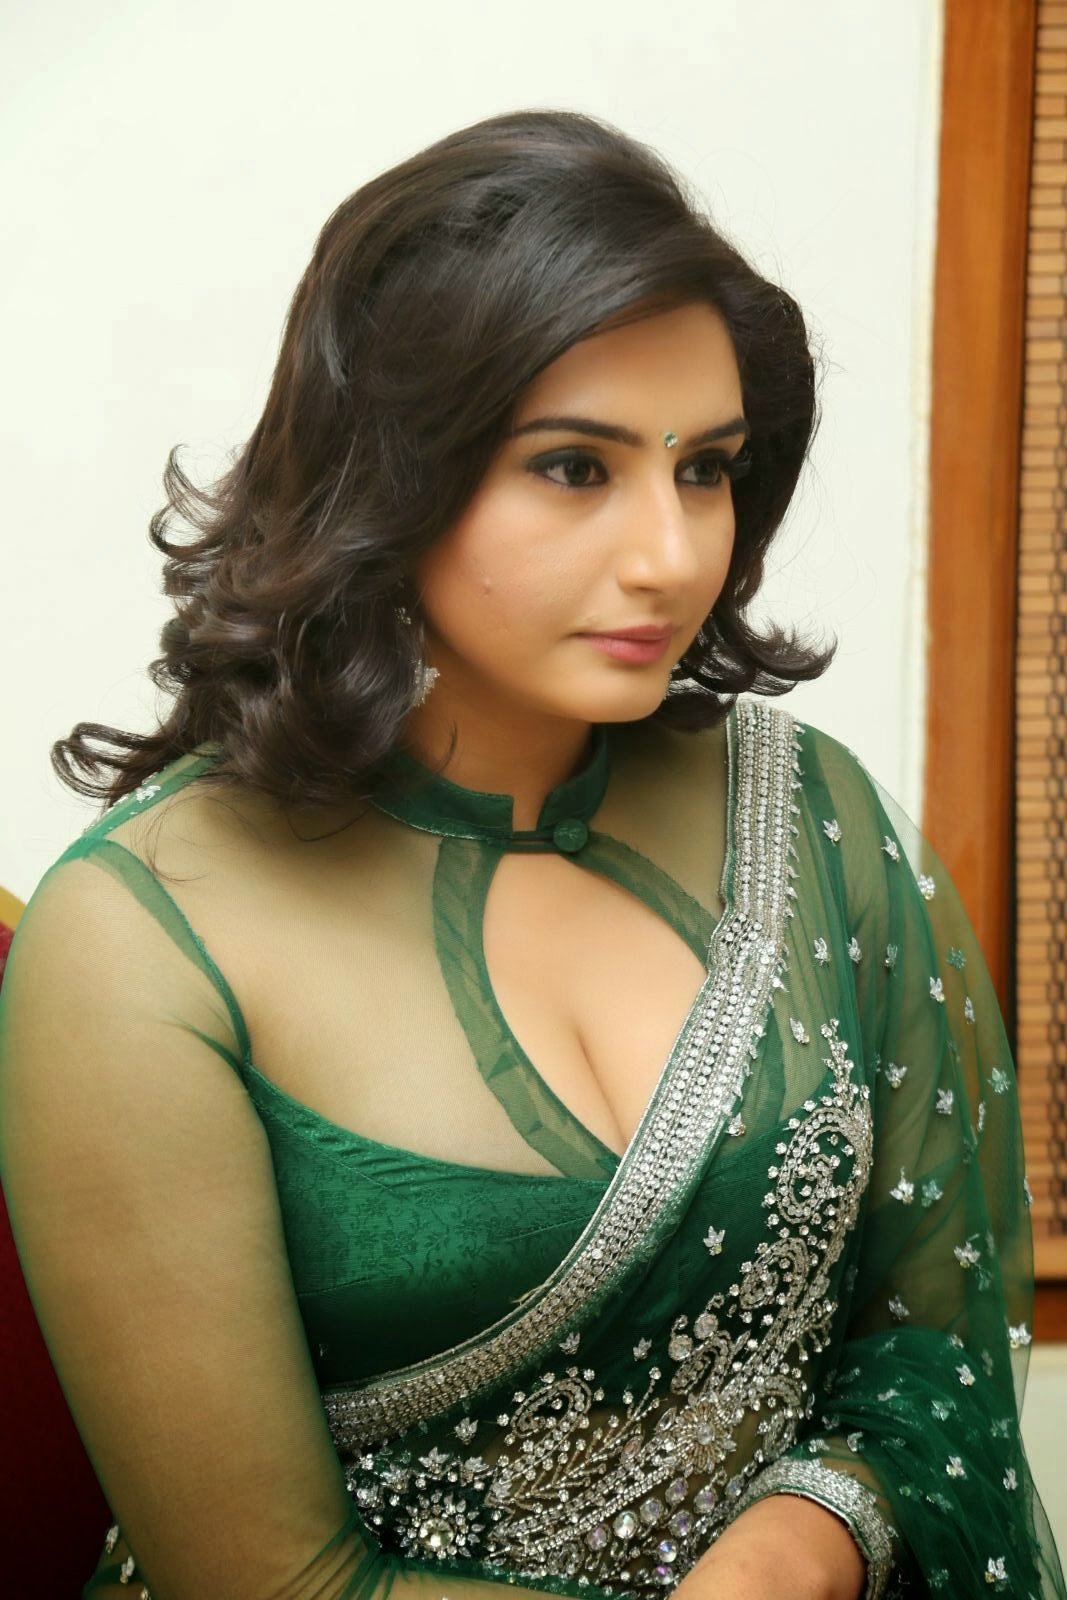 Indian cleavage show